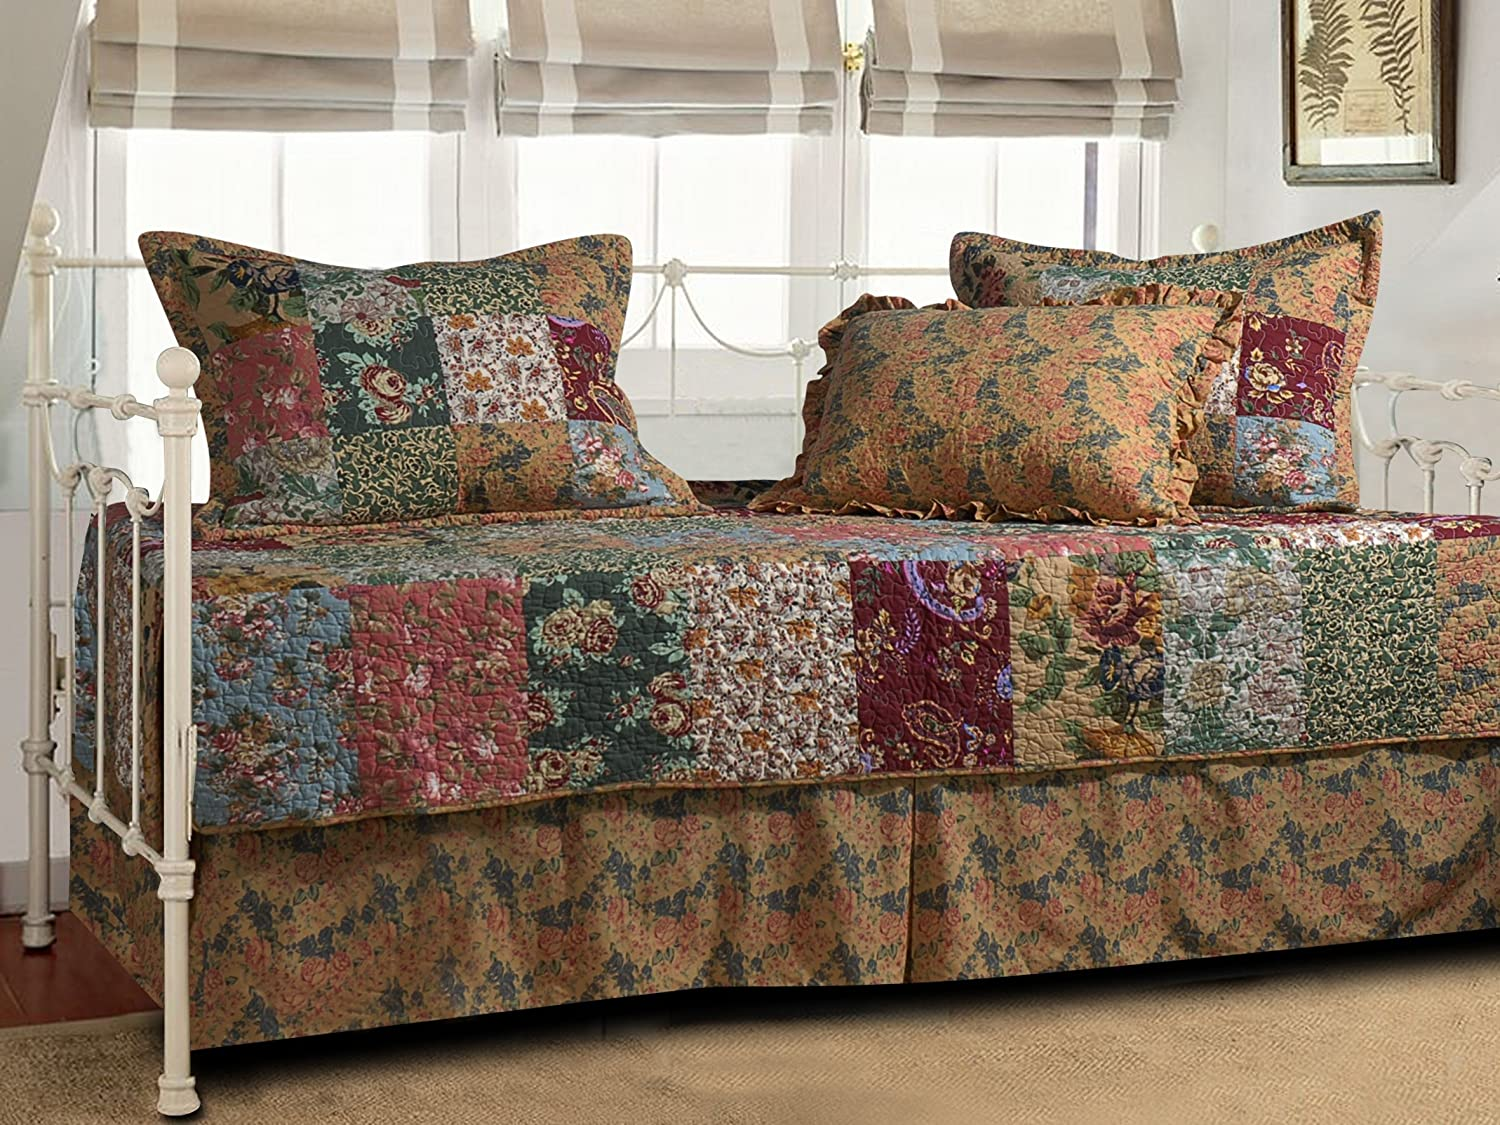 Greenland Home Antique Chic 5-Piece Daybed Set GL-0911AD